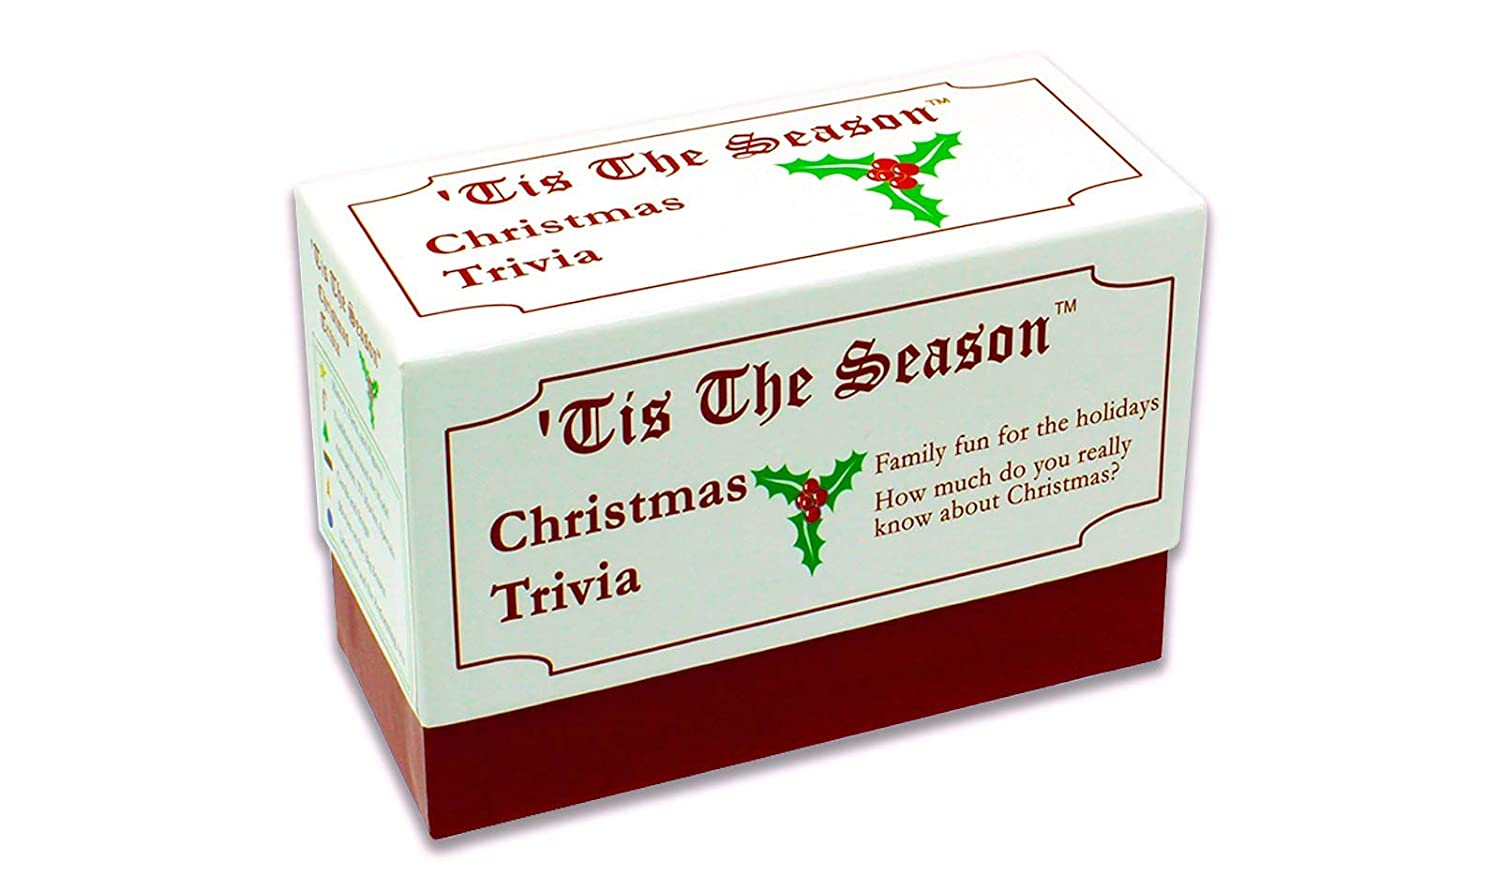 Christmas Bible Trivia.Tis The Season Christmas Trivia Game The Classic And Original Featuring Christmas Trivia Cards Questions That Make For Great Holiday Games For